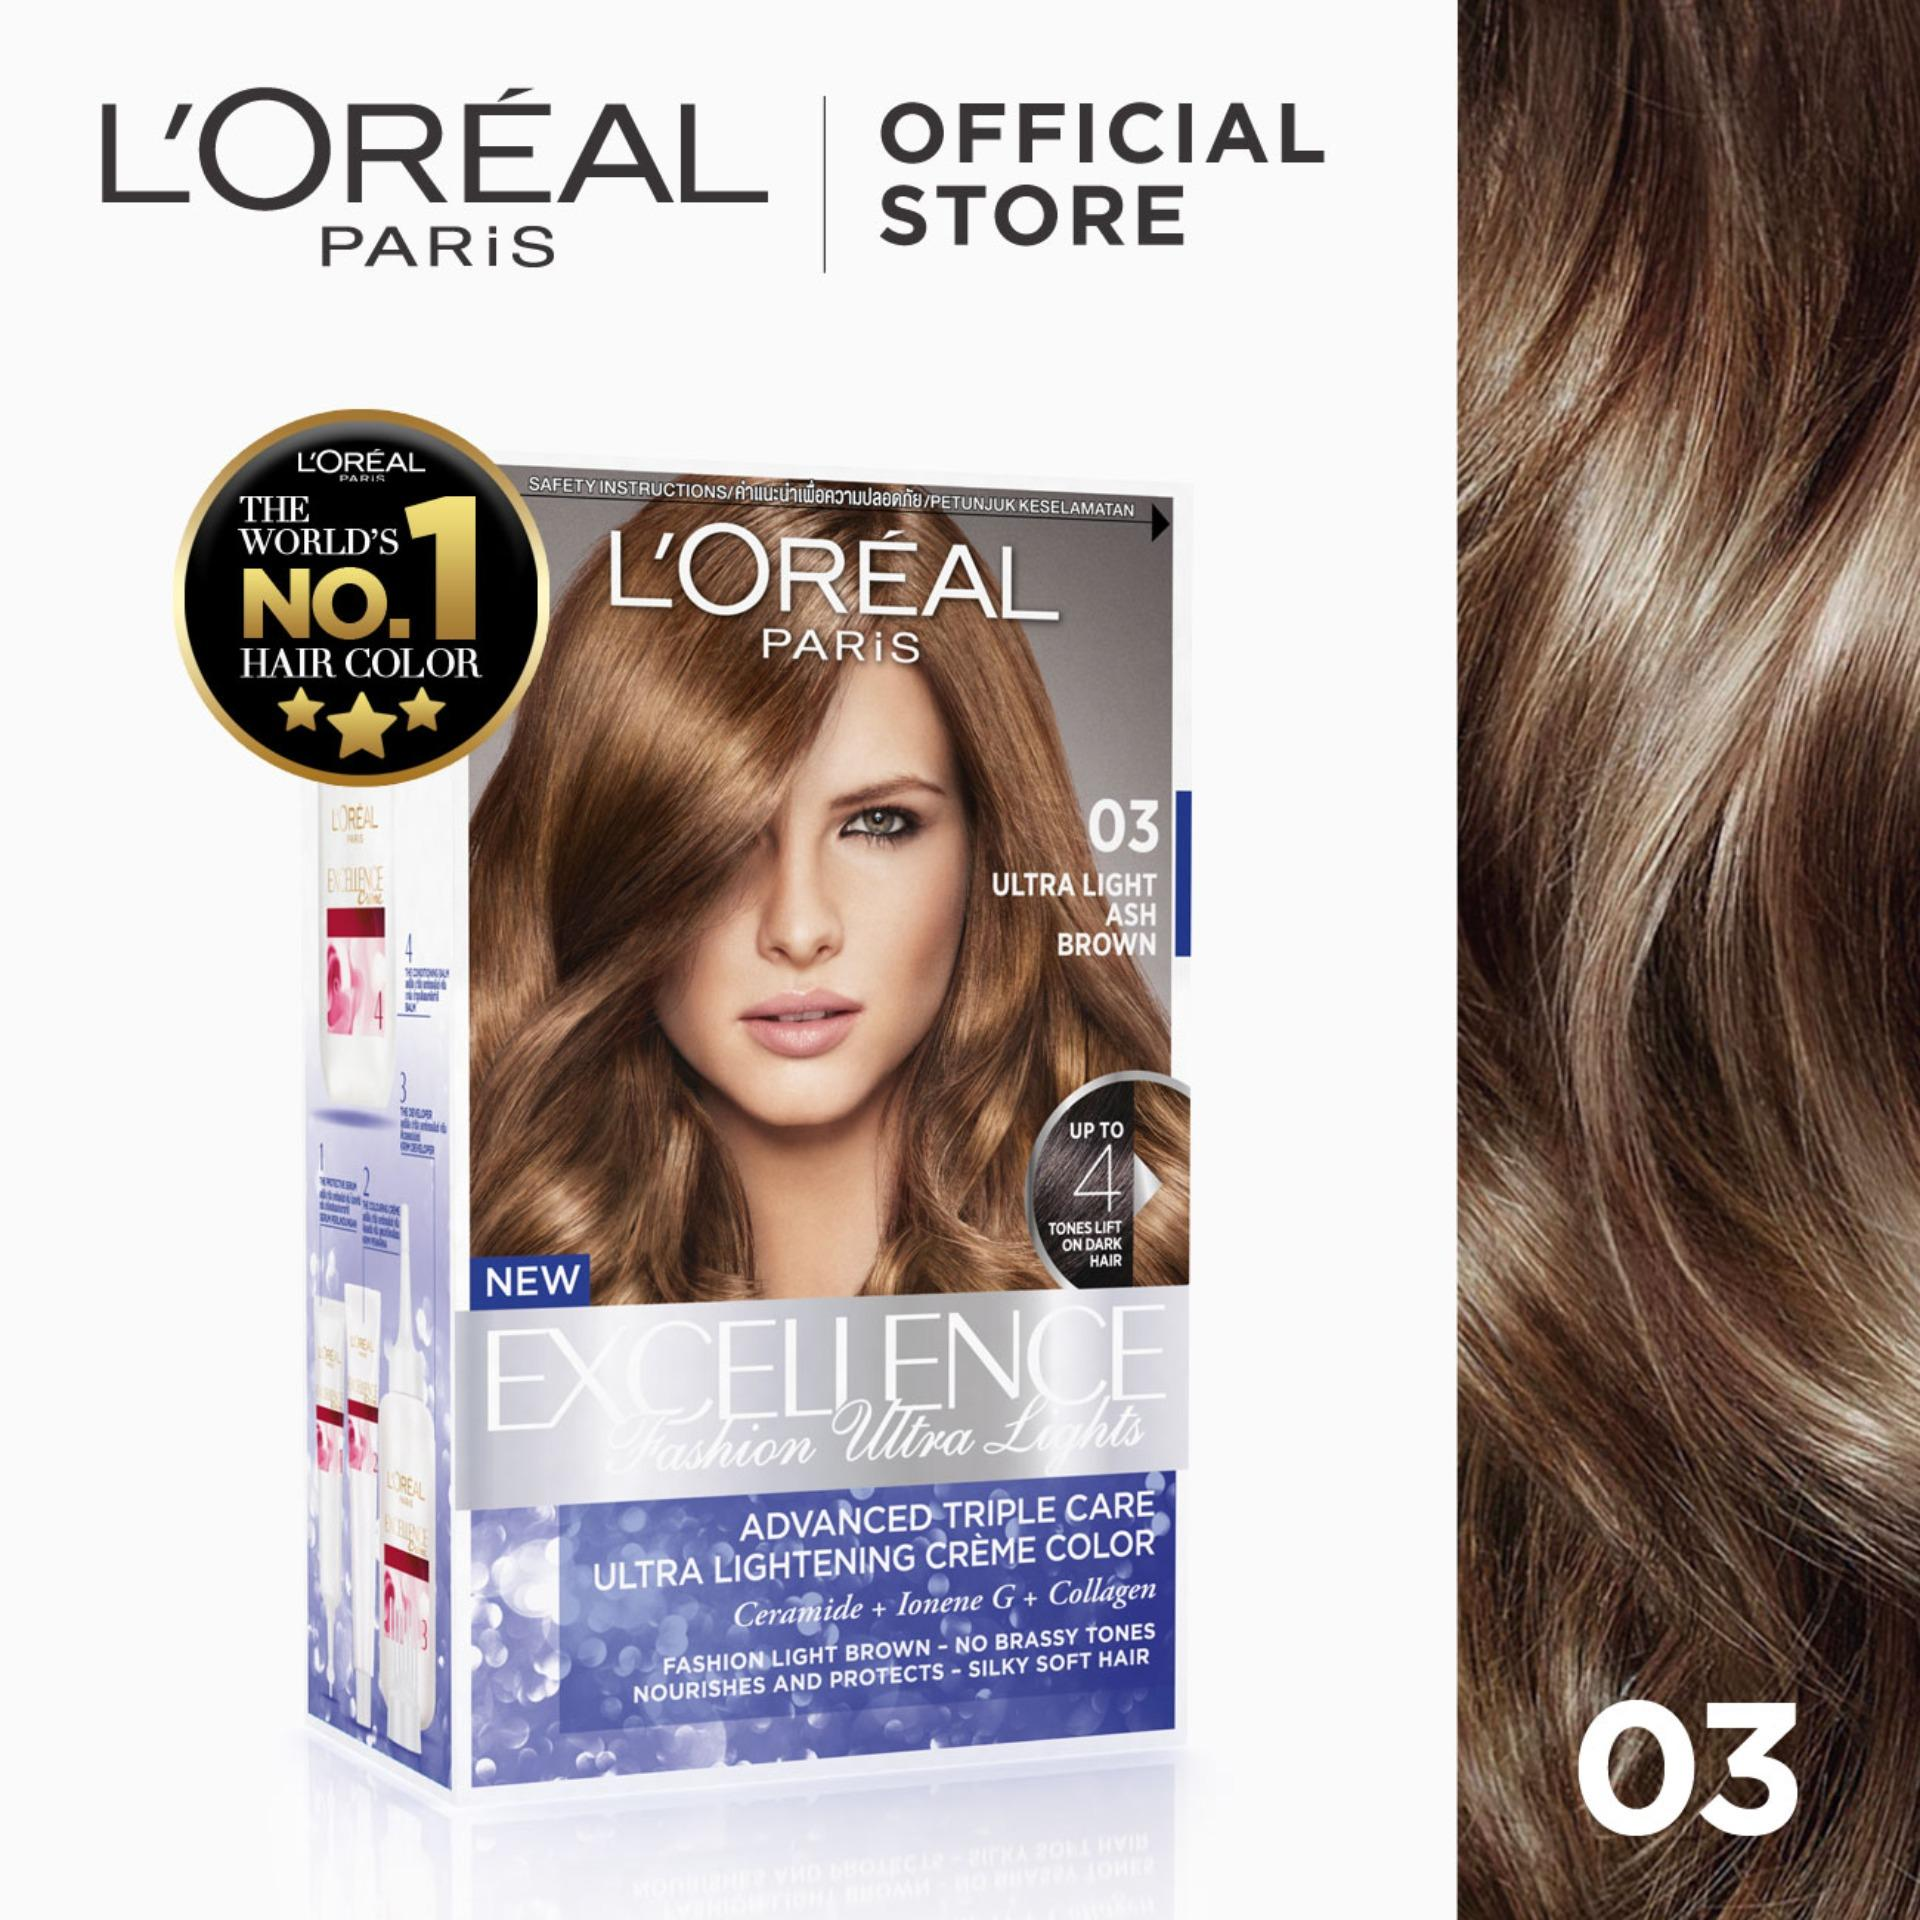 Hair color brands hair dye on sale prices set reviews in excellence fashion ultra lights 03 ash brown worlds no1 by l solutioingenieria Gallery